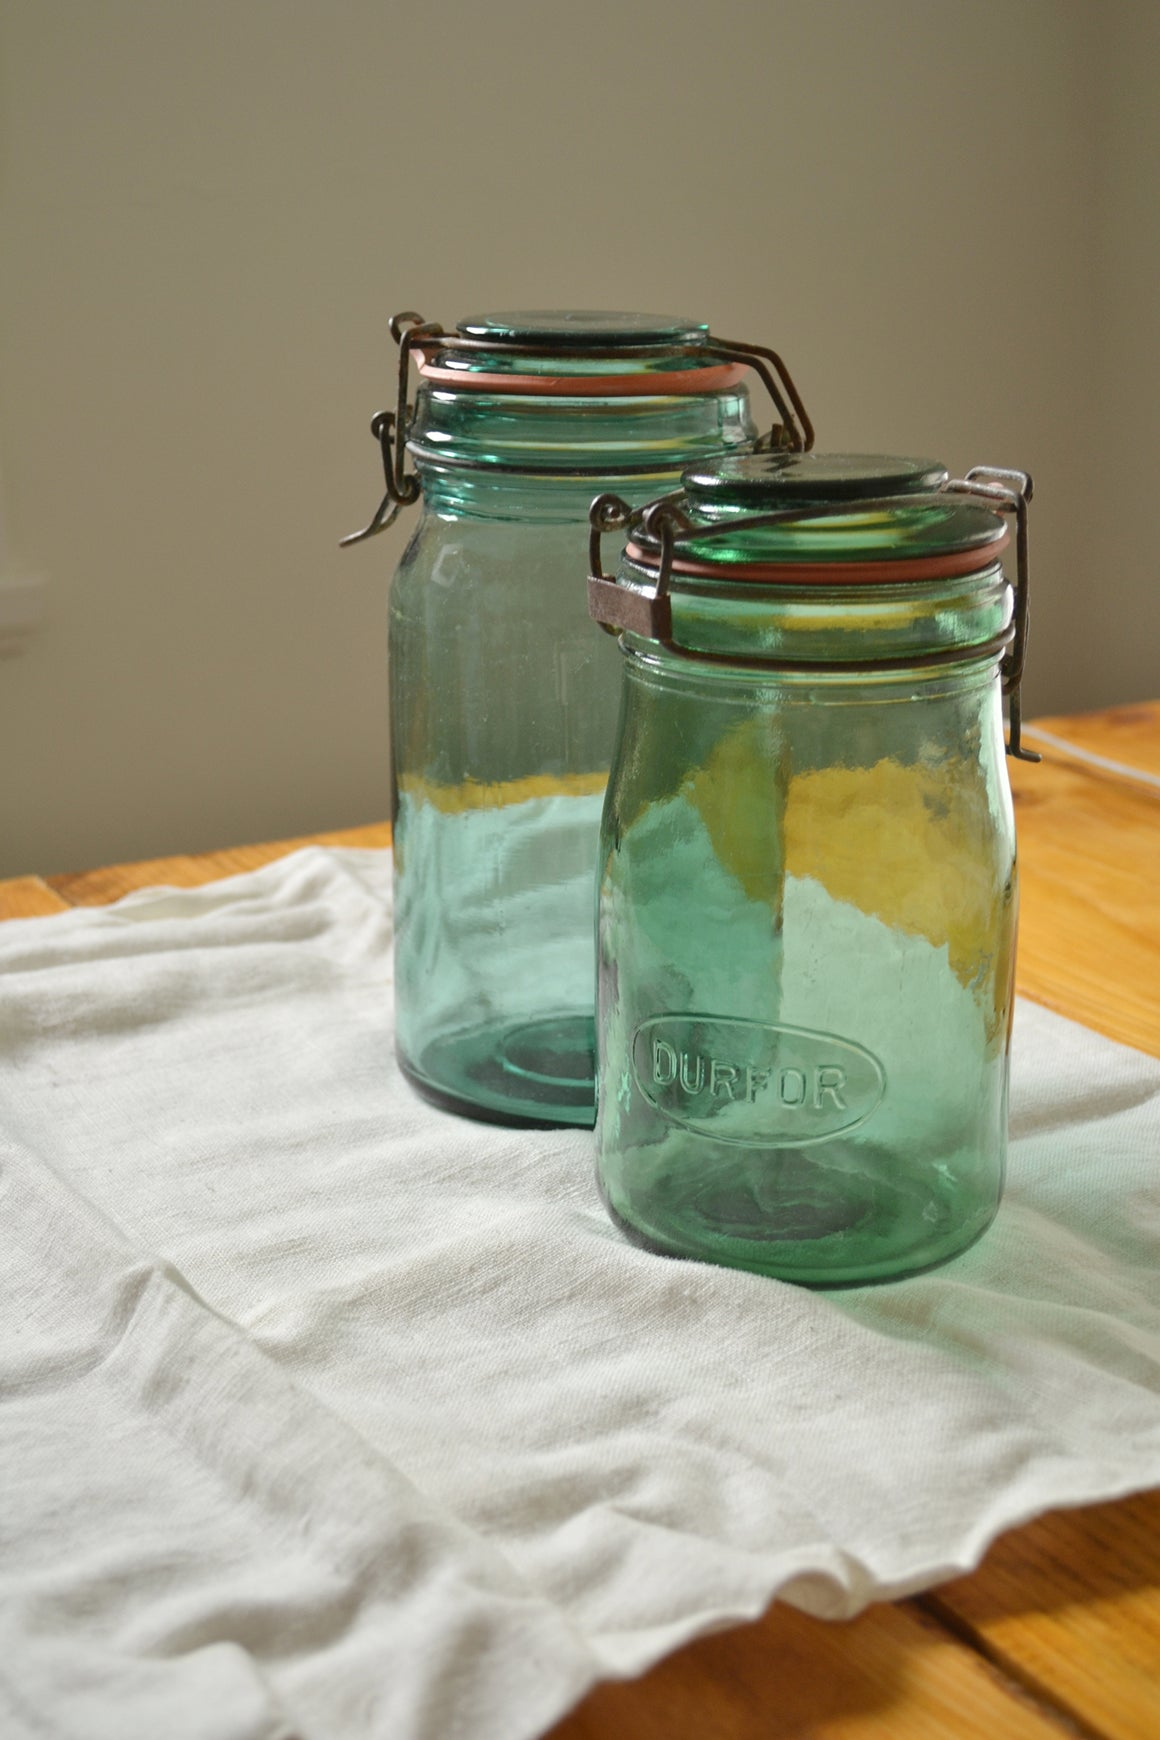 French Vintage Green Durfor Glass Kitchen Jar